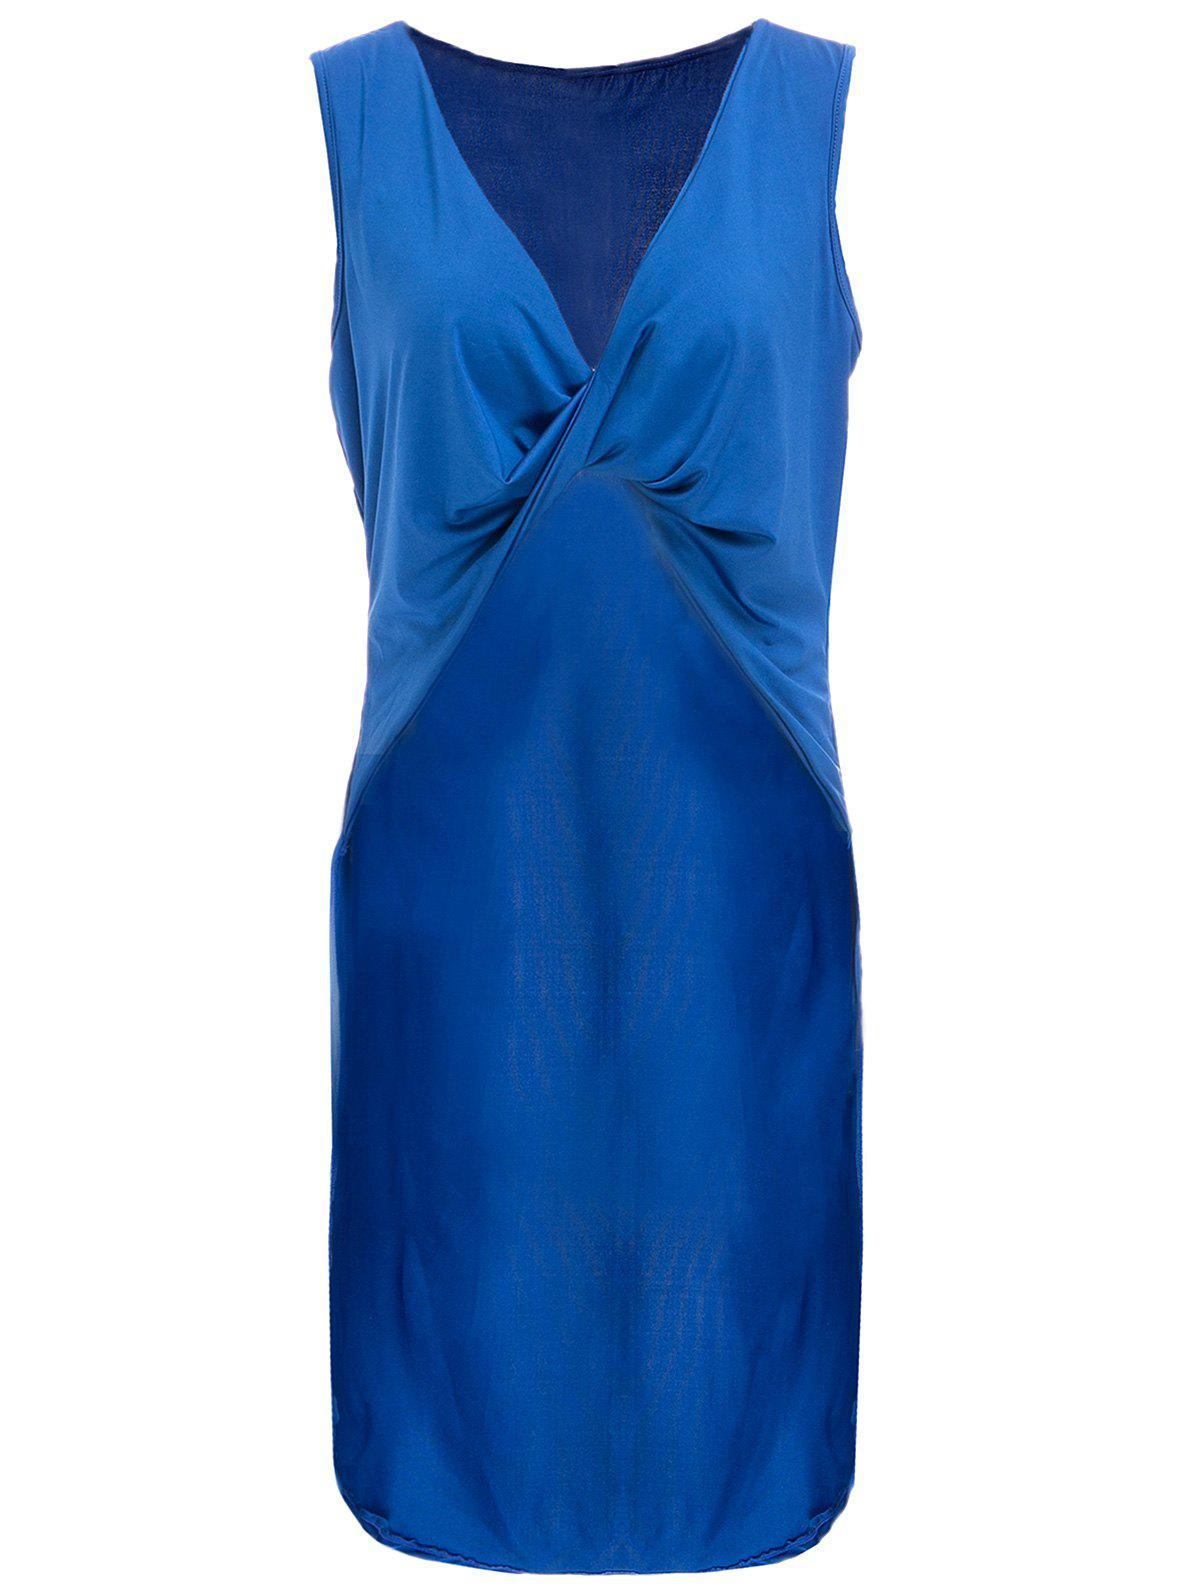 Chic Women's Plunging Neck Blue High Low Sleeveless Top